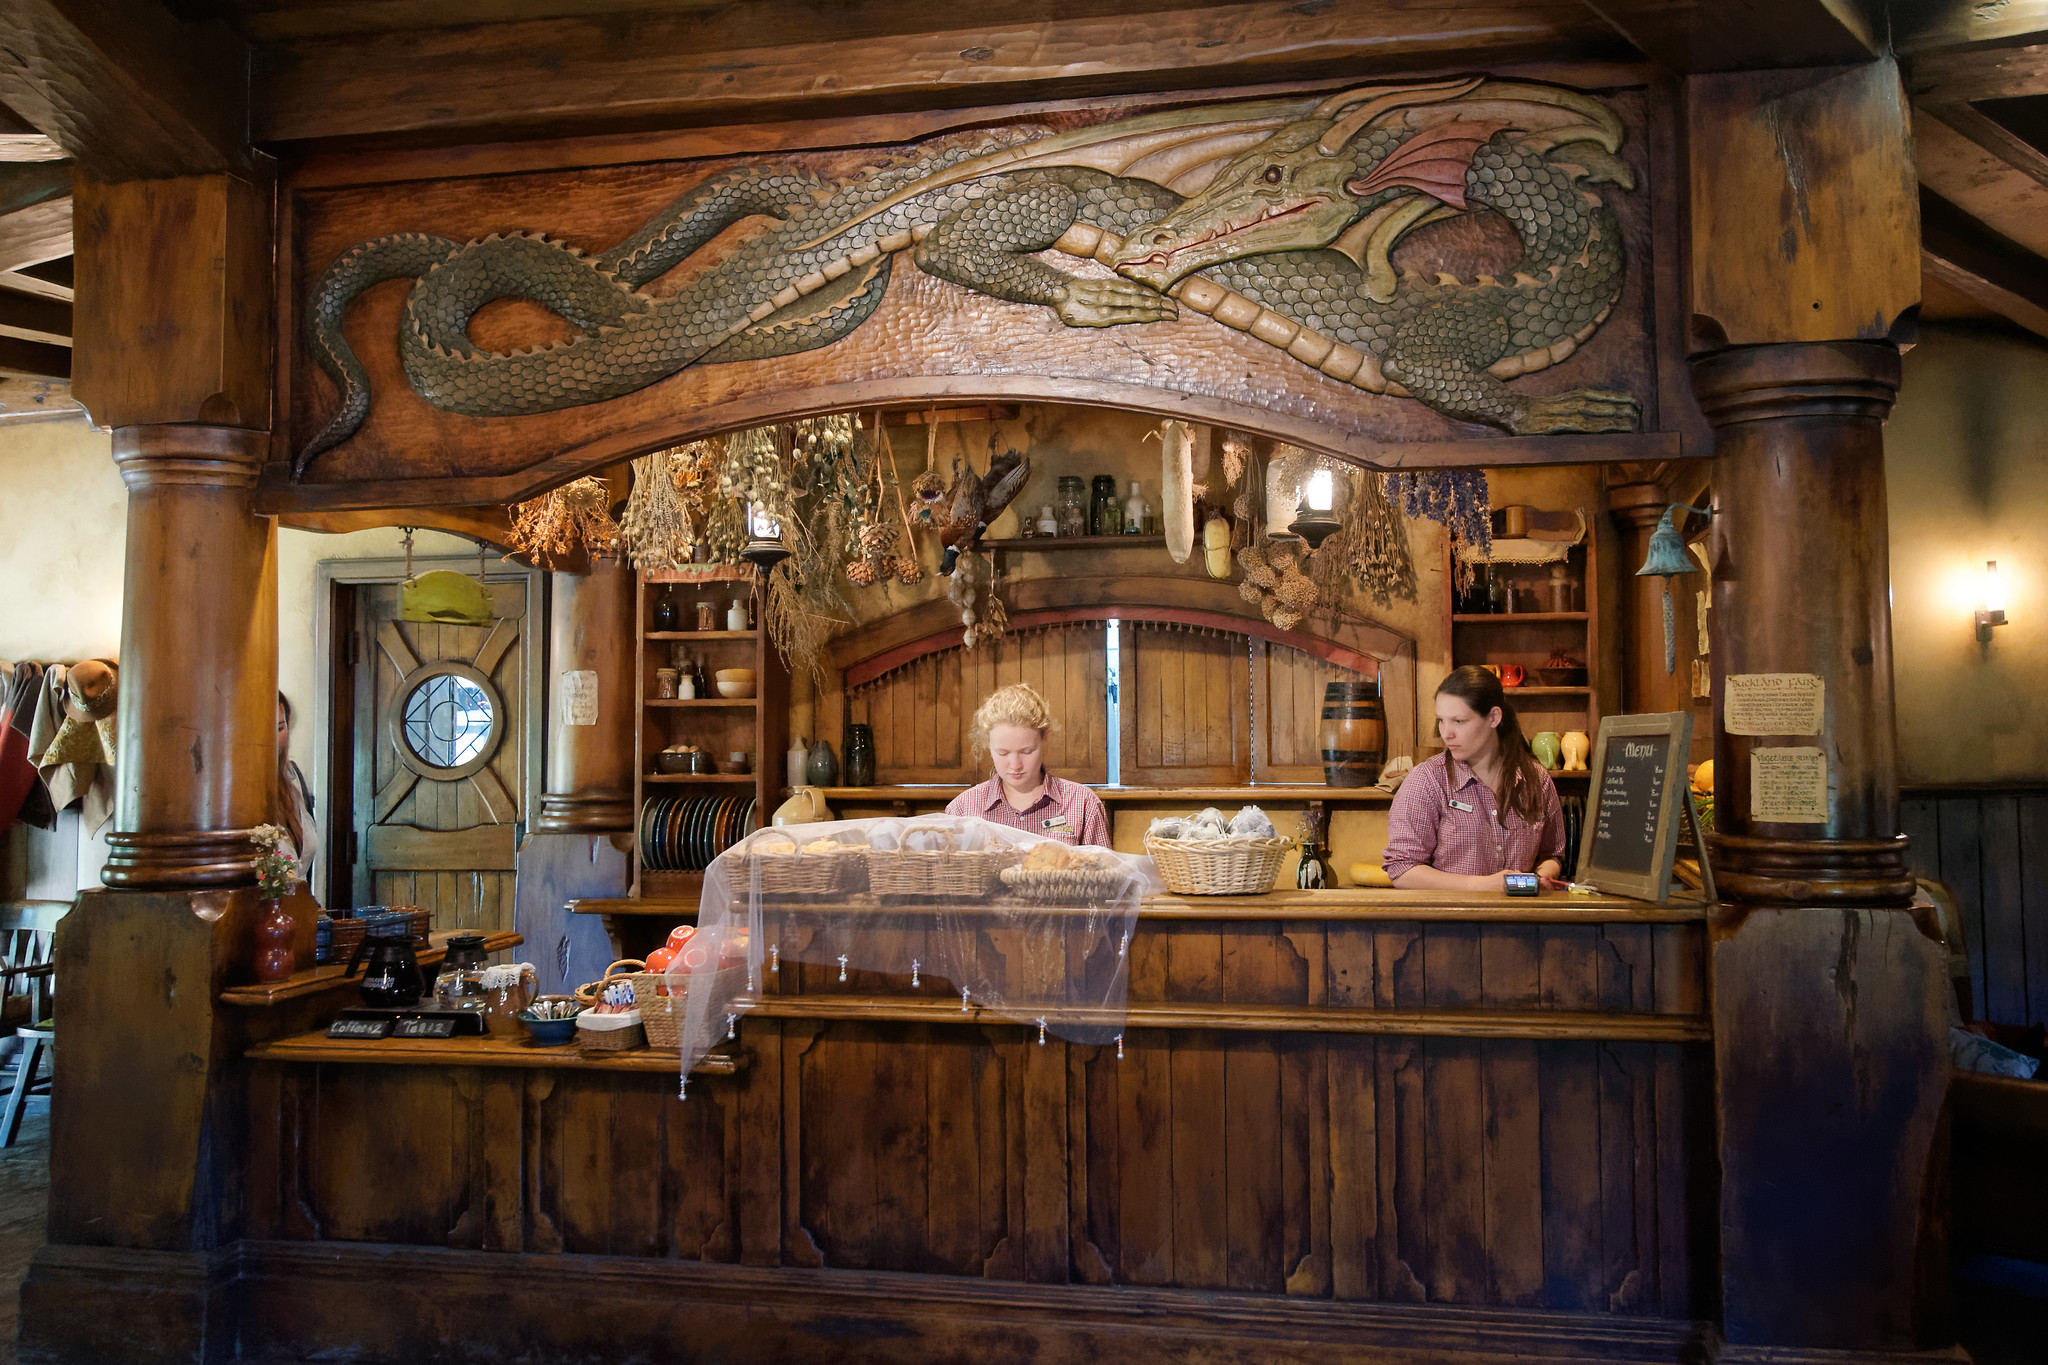 The Green Dragon Inn - Hobbiton